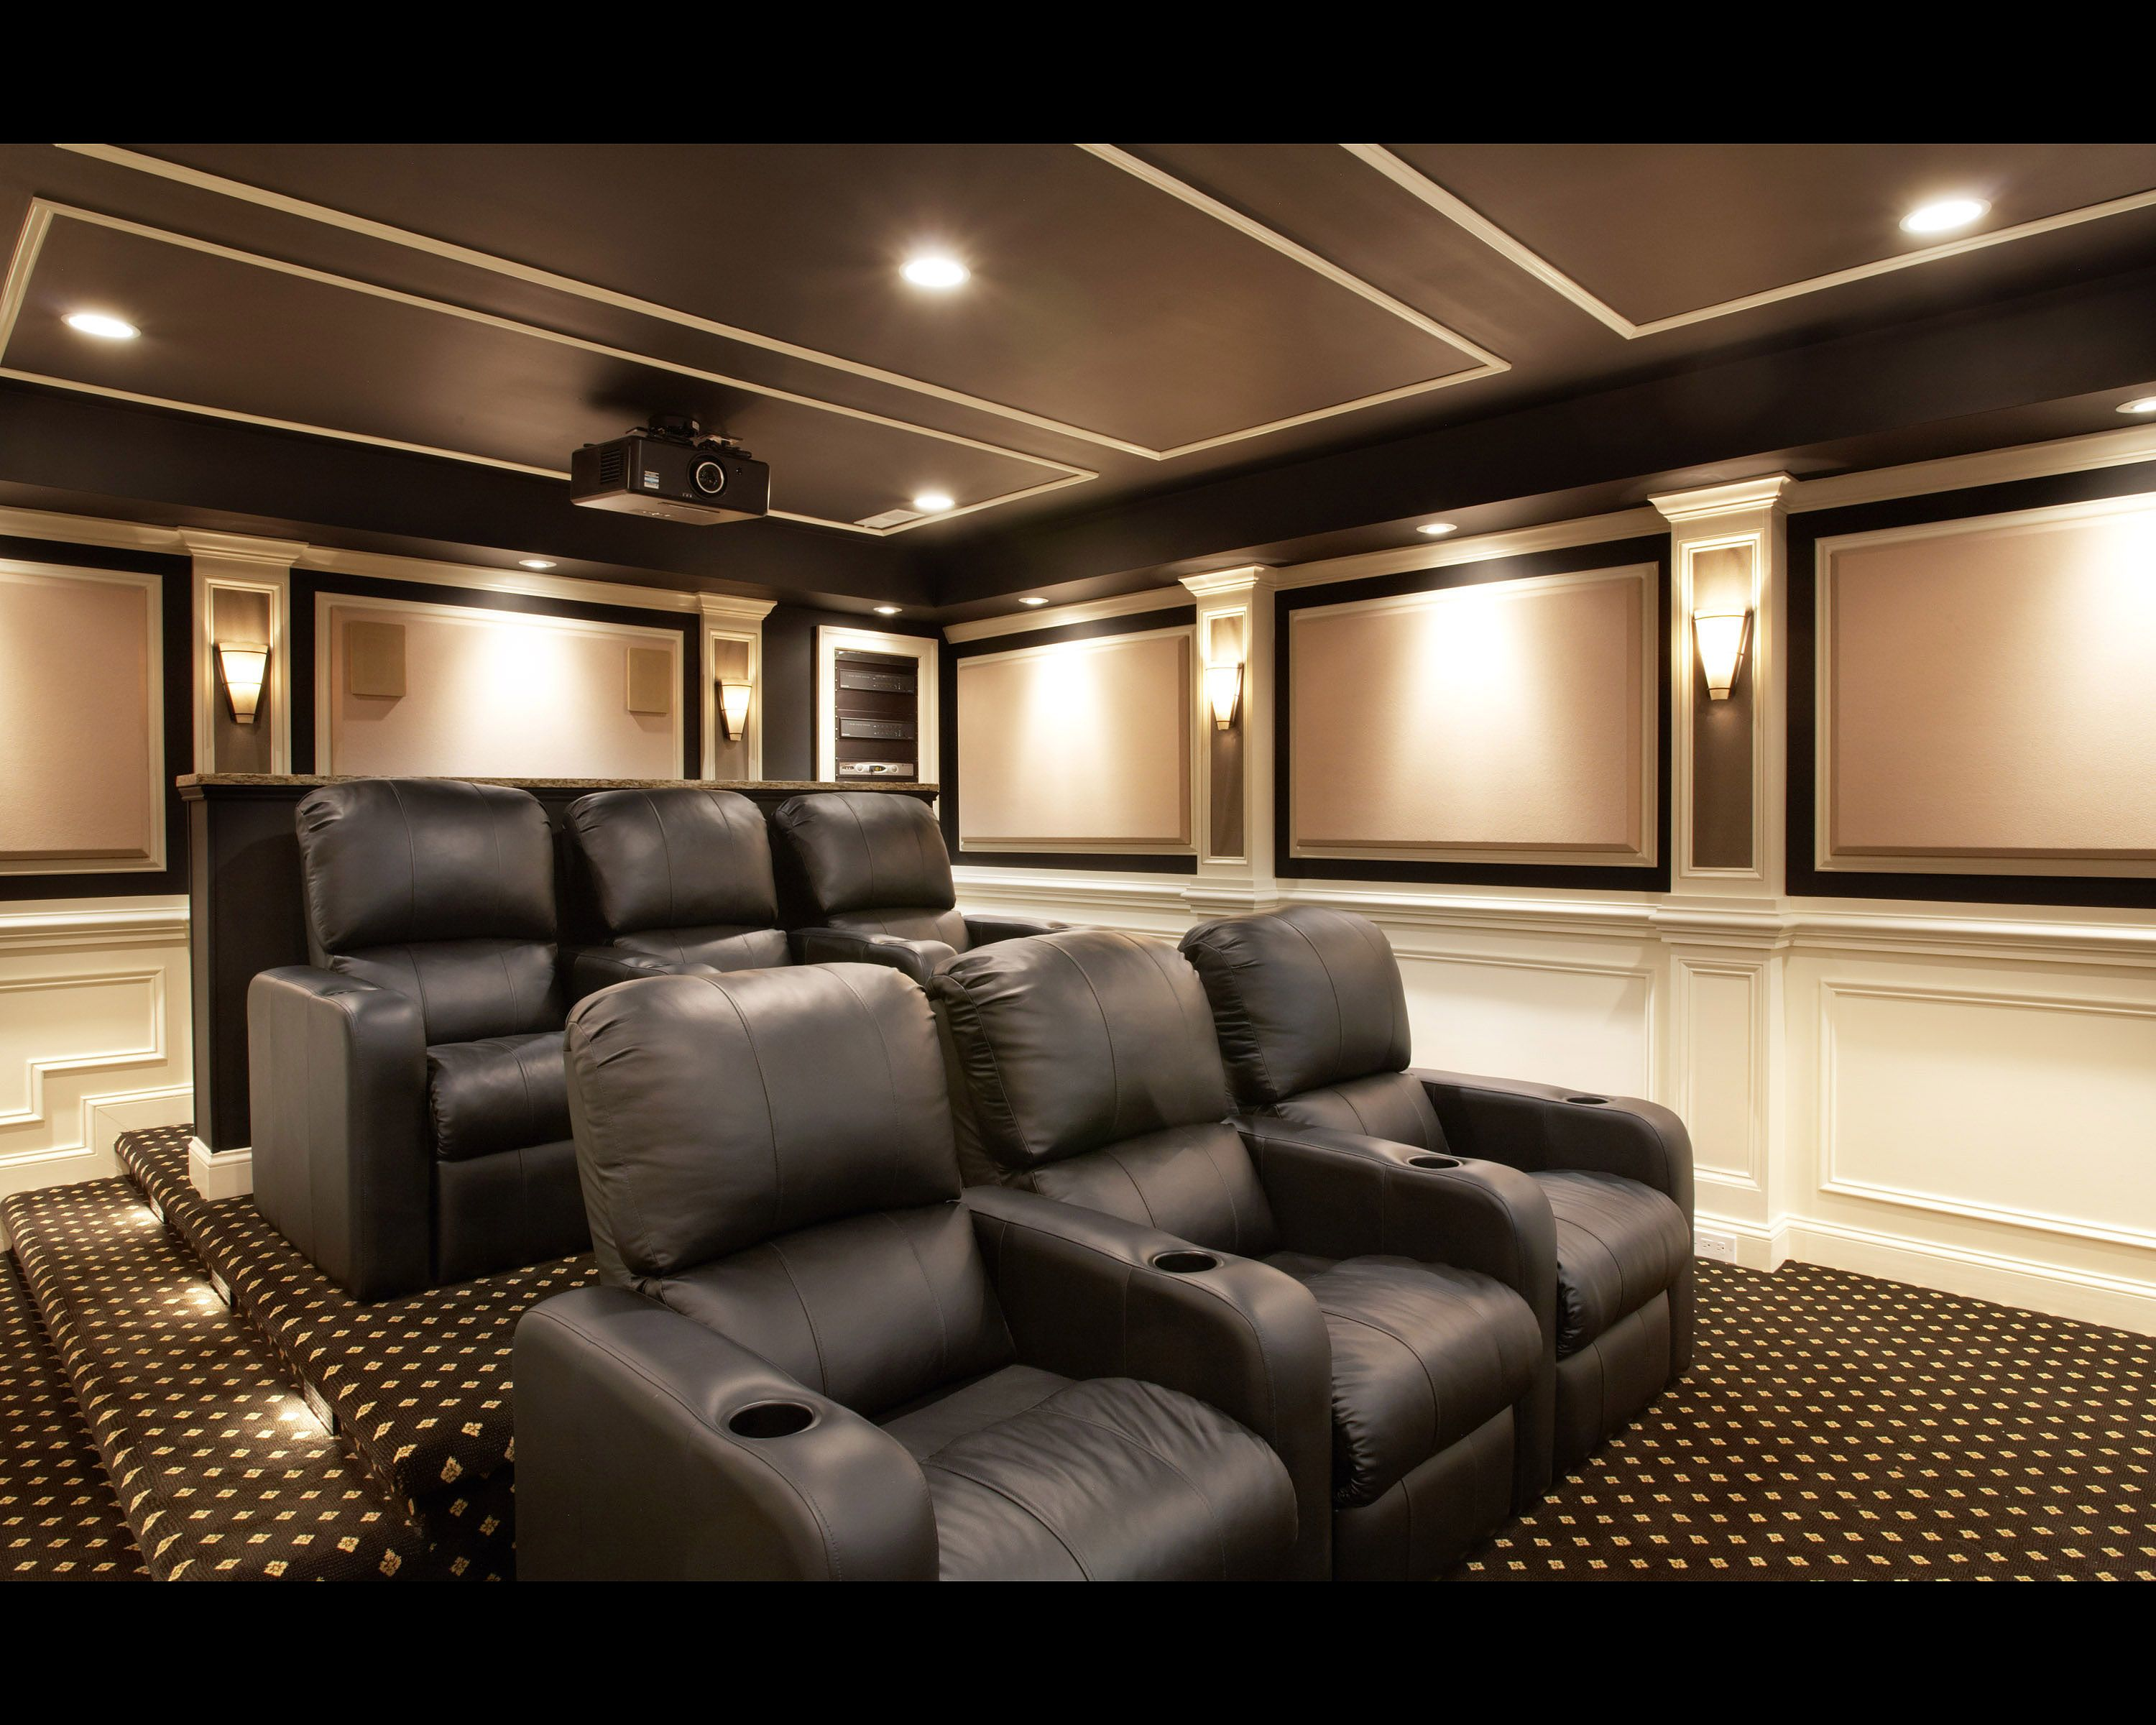 Exterior: Stupendous Room With Black Sofa On Motive Carpet Under Lighting  On Interesting Ceiling Plus Simple Projector And Wall Lamp For Home Theater  Design ...